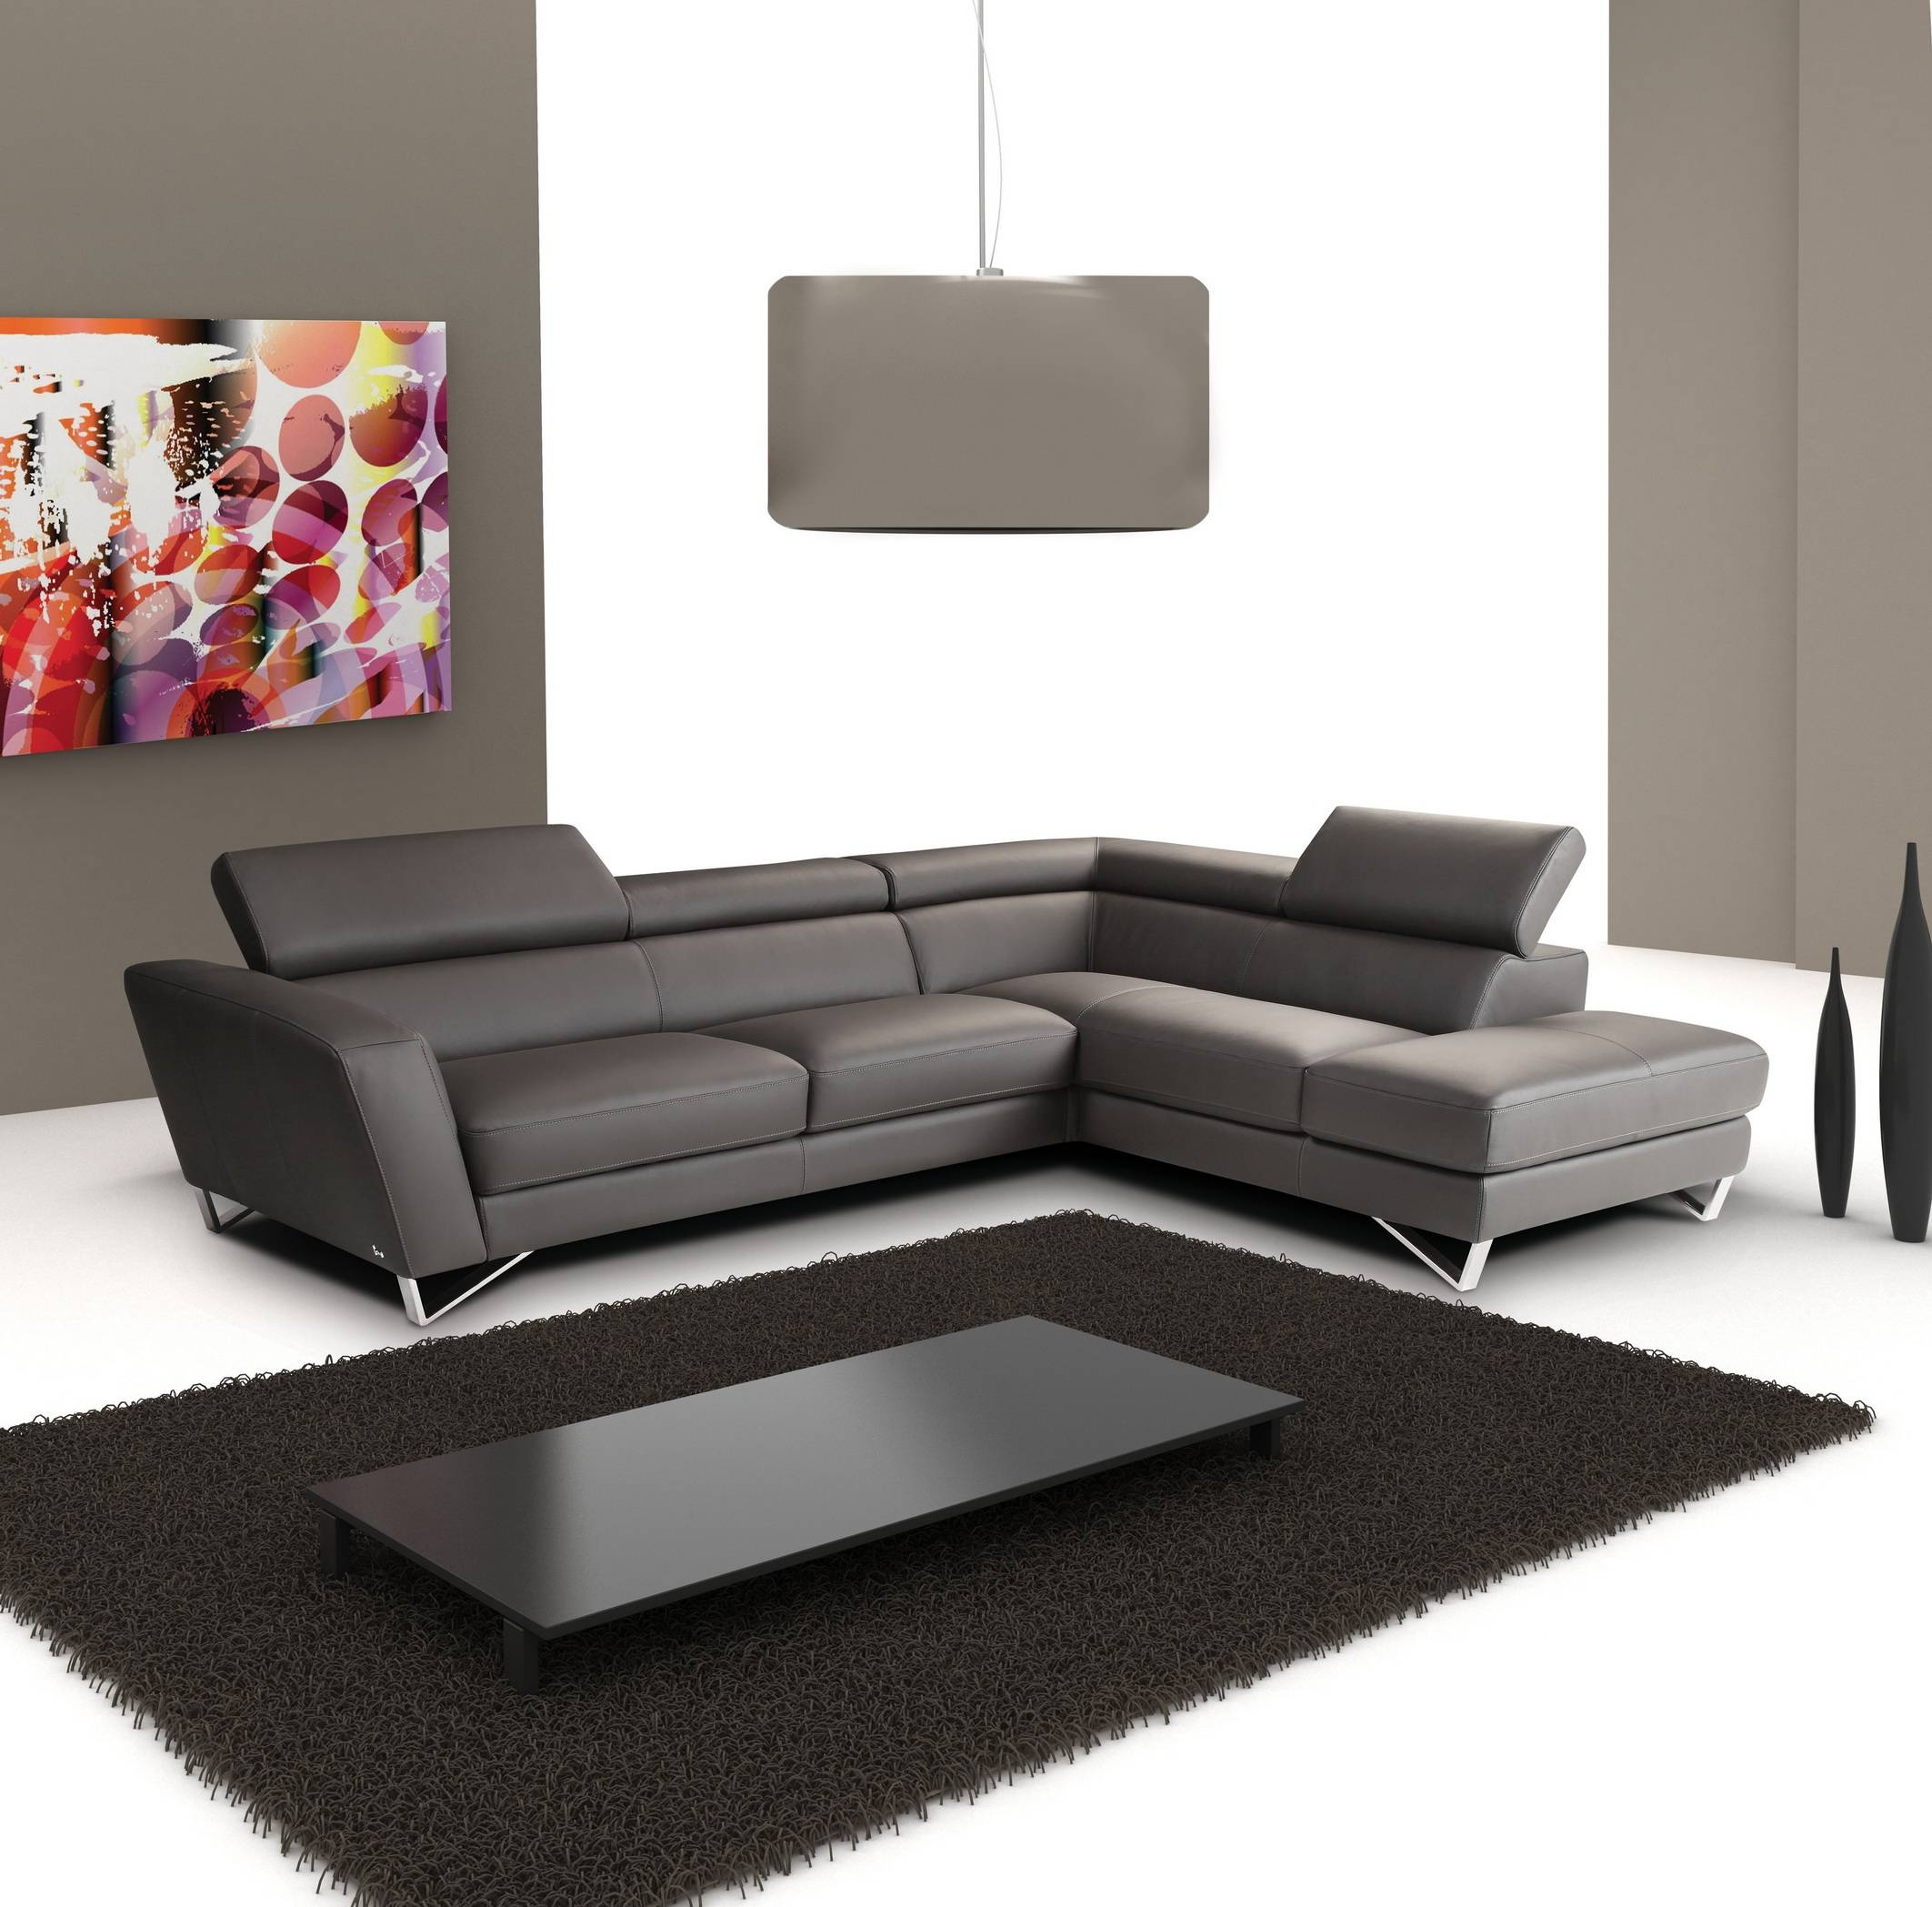 30 The Best Diana Dark Brown Leather Sectional Sofa Set